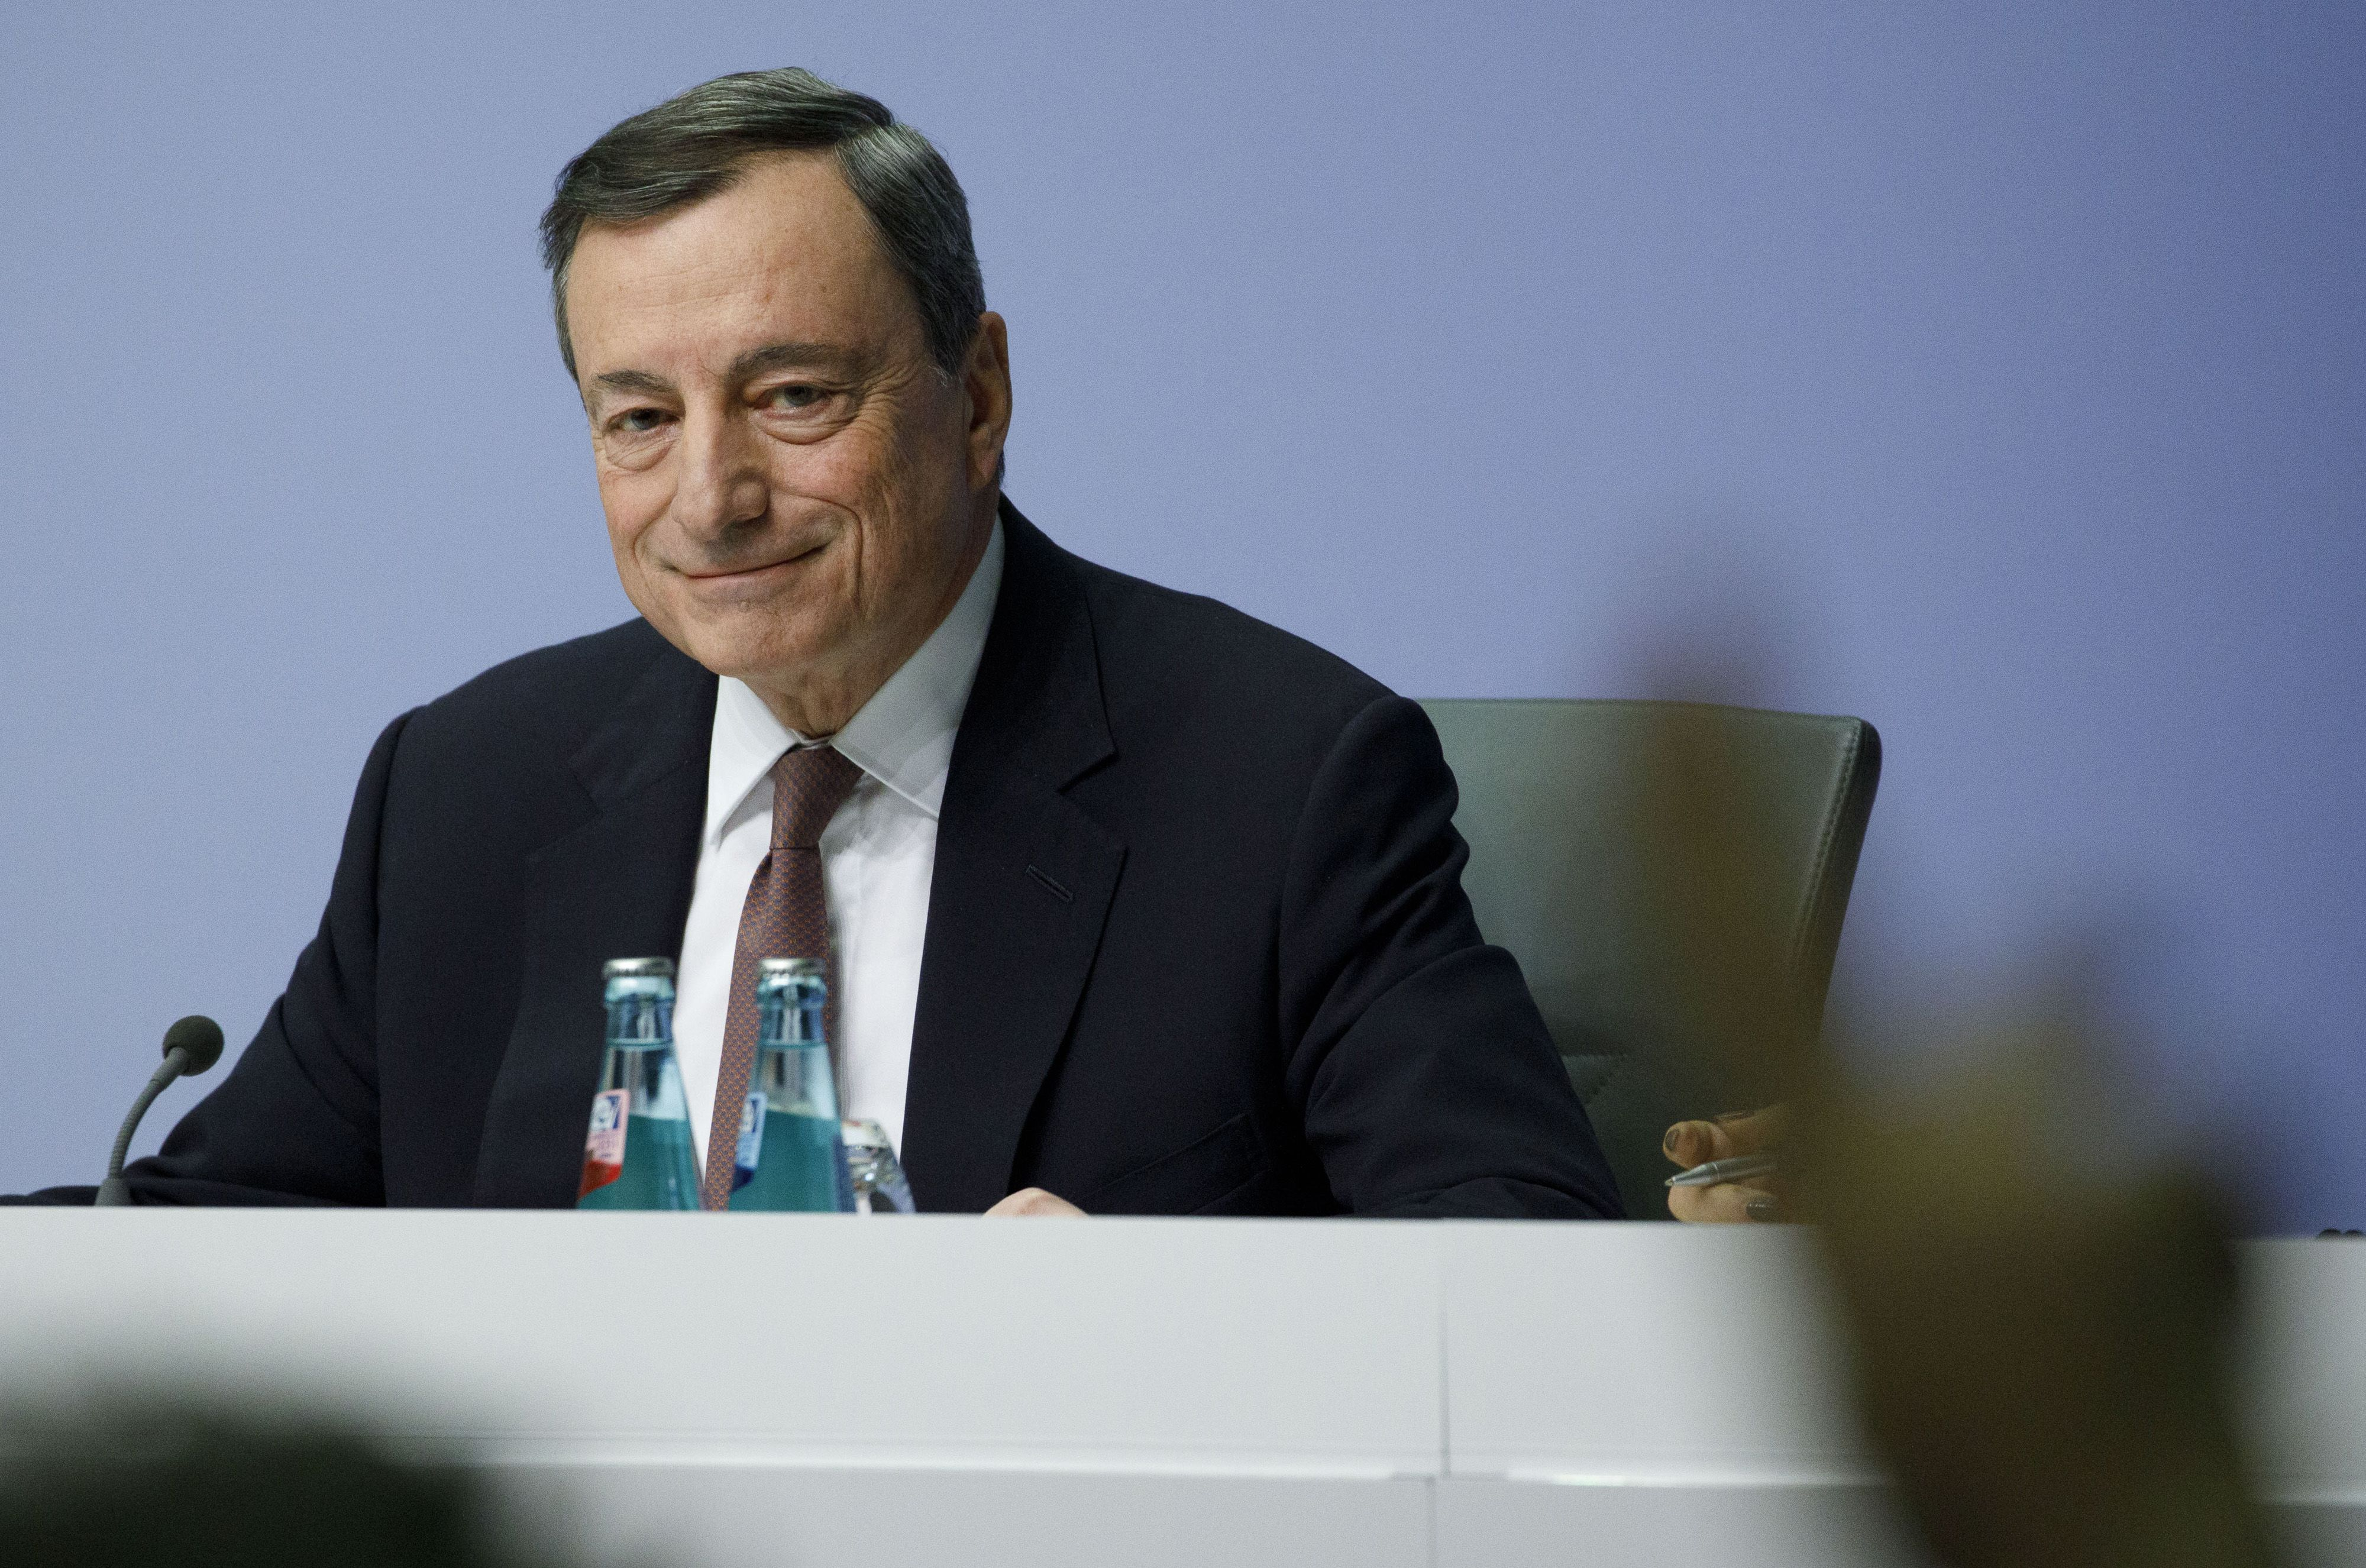 ECB President Draghi speaks at press conference after policy decision